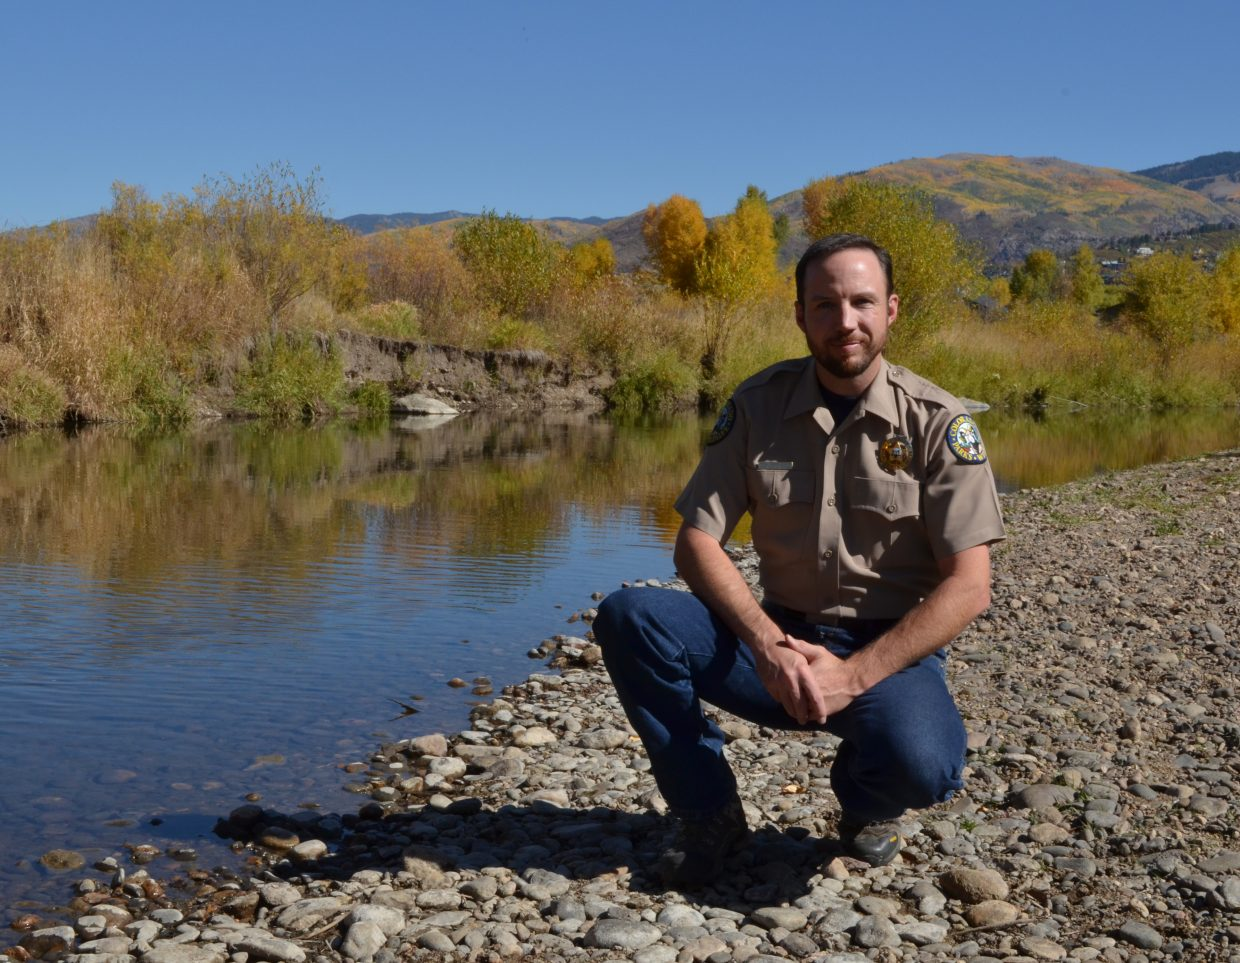 Kris Middledorf, the new Colorado Parks and Wildlife Area Manager based in Steamboat Springs, said he was immediately struck by the diversity of animal species in Routt County and the community's involvement in conserving habitat.